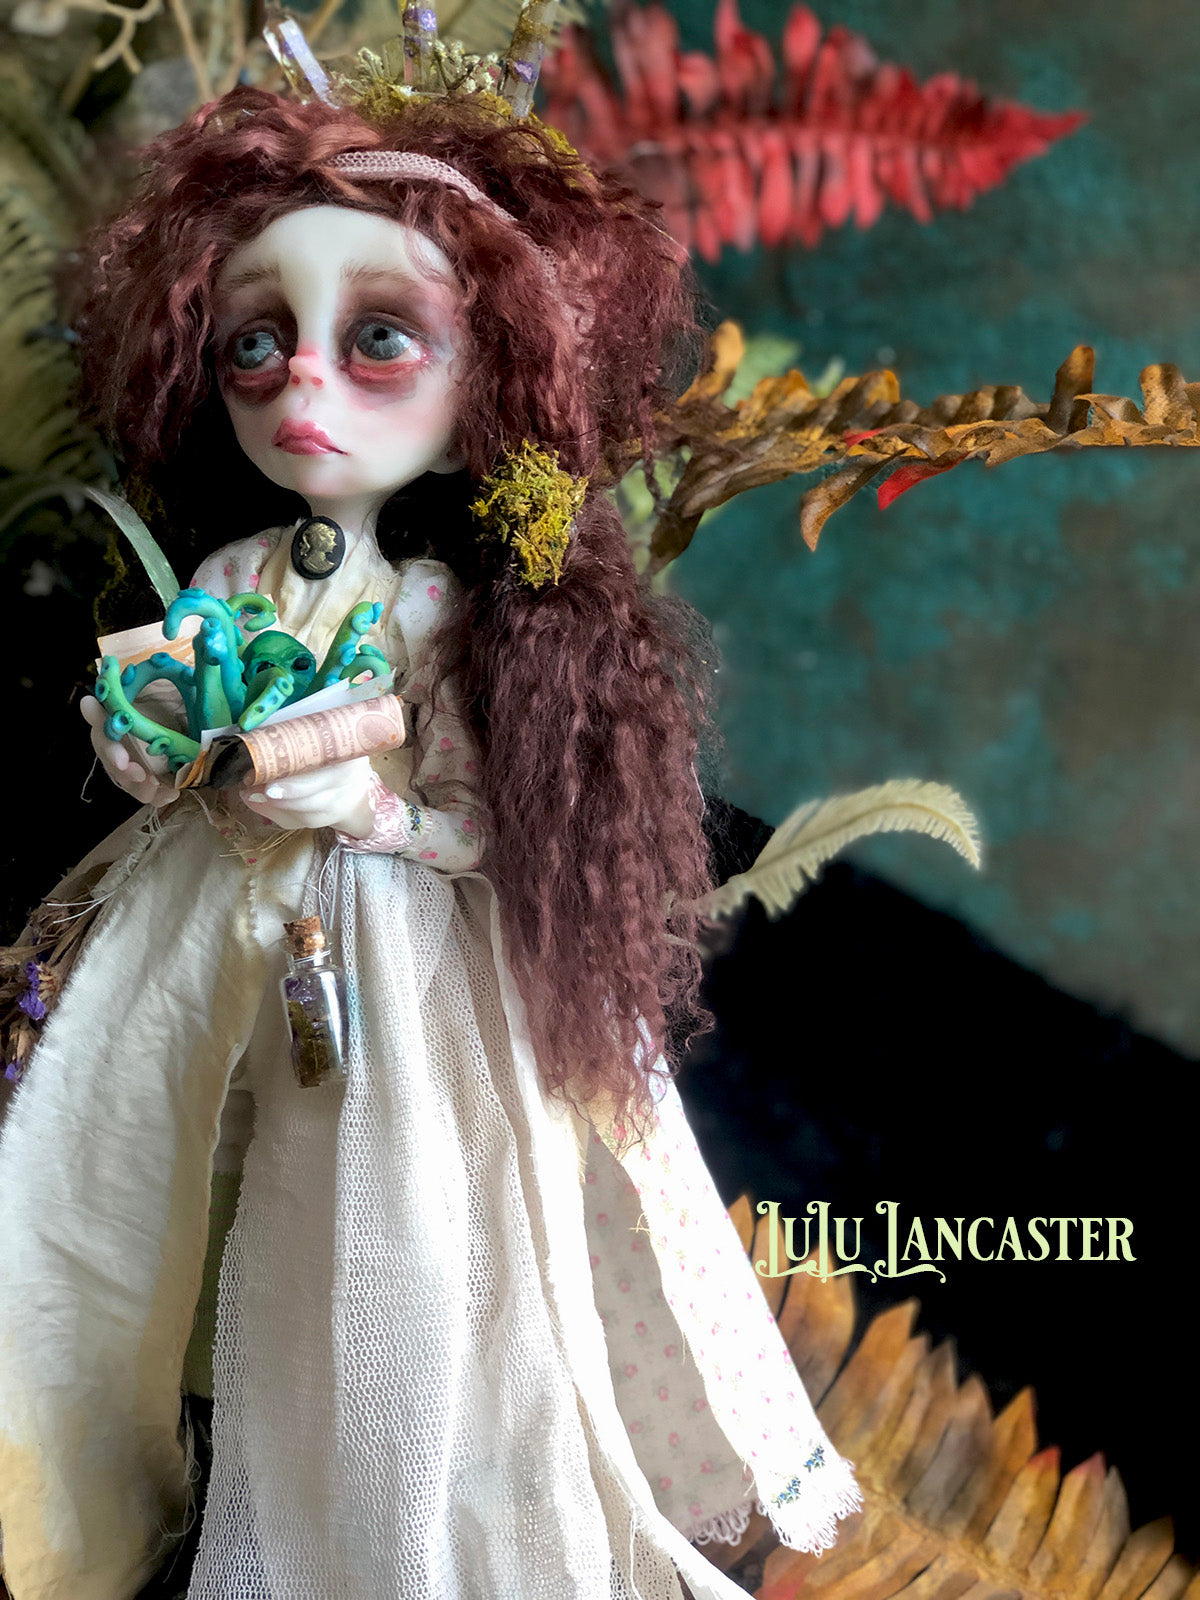 Spen of Moss End Crystal WItchery OOAK Art Doll LuLu Lancaster